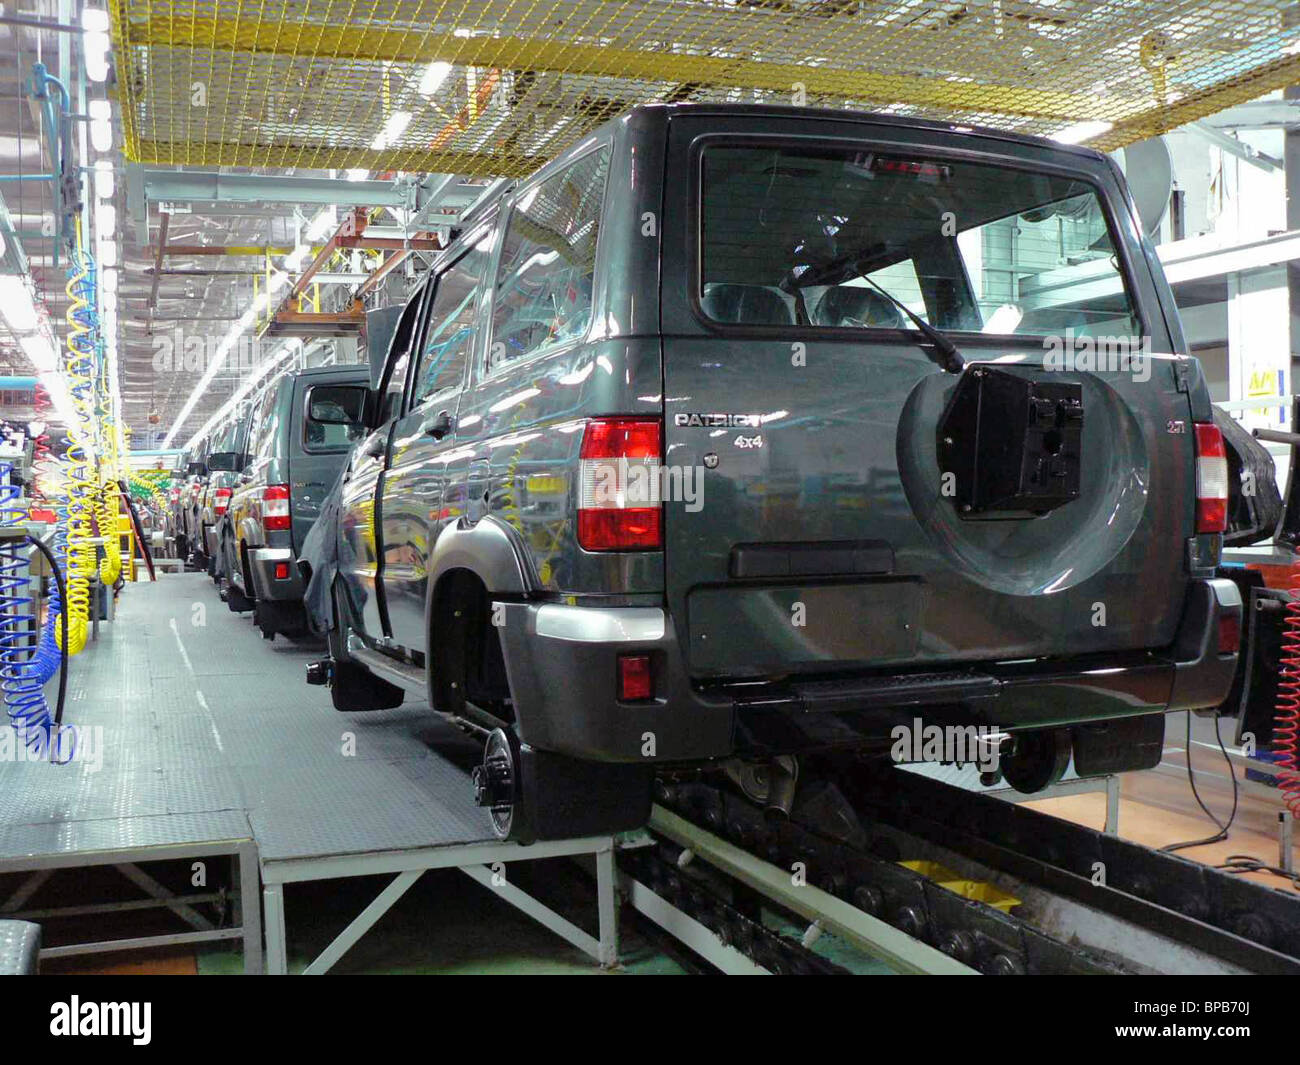 Ulyanovsk Motor Works launches productions of a new UAZ-Patriot jeep - Stock Image